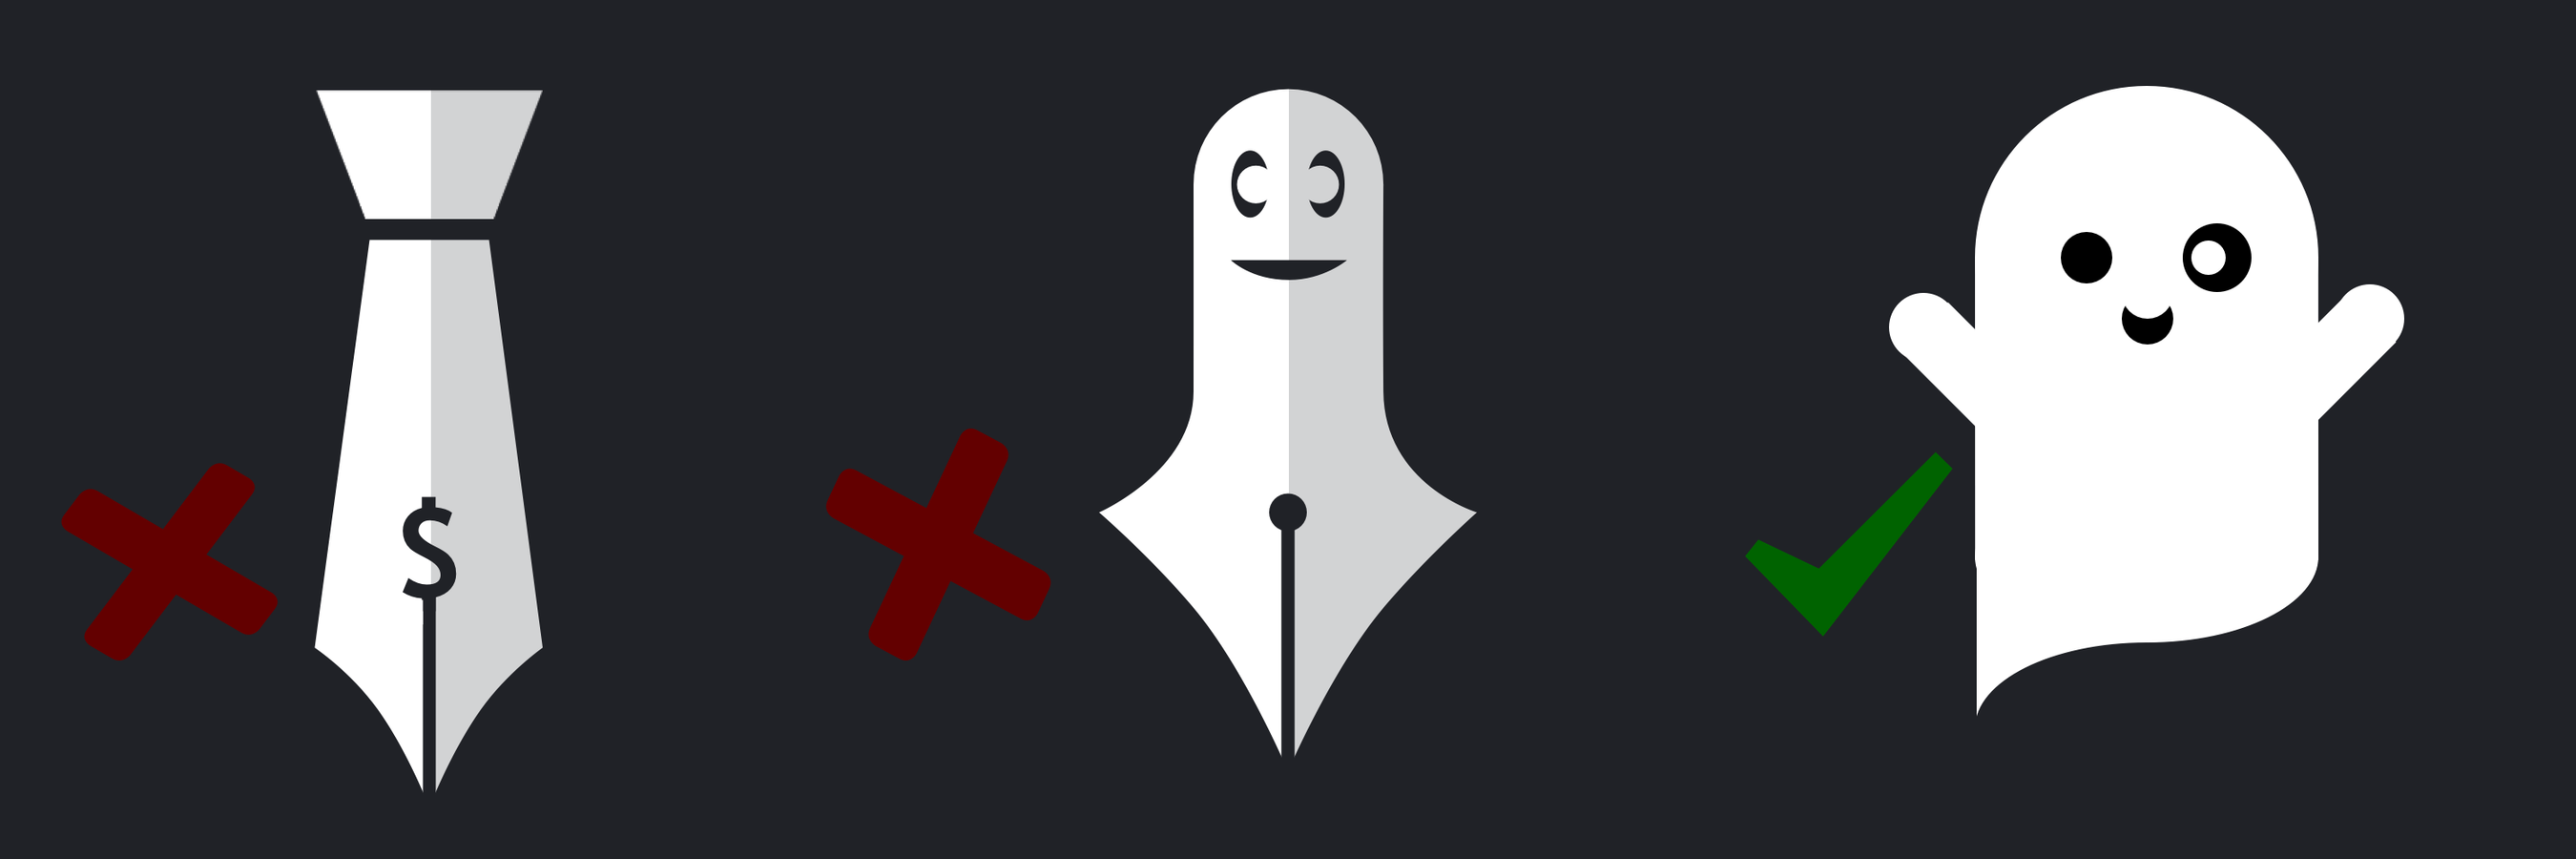 Evolution of Toby, the B2B Ghostwriting ghost